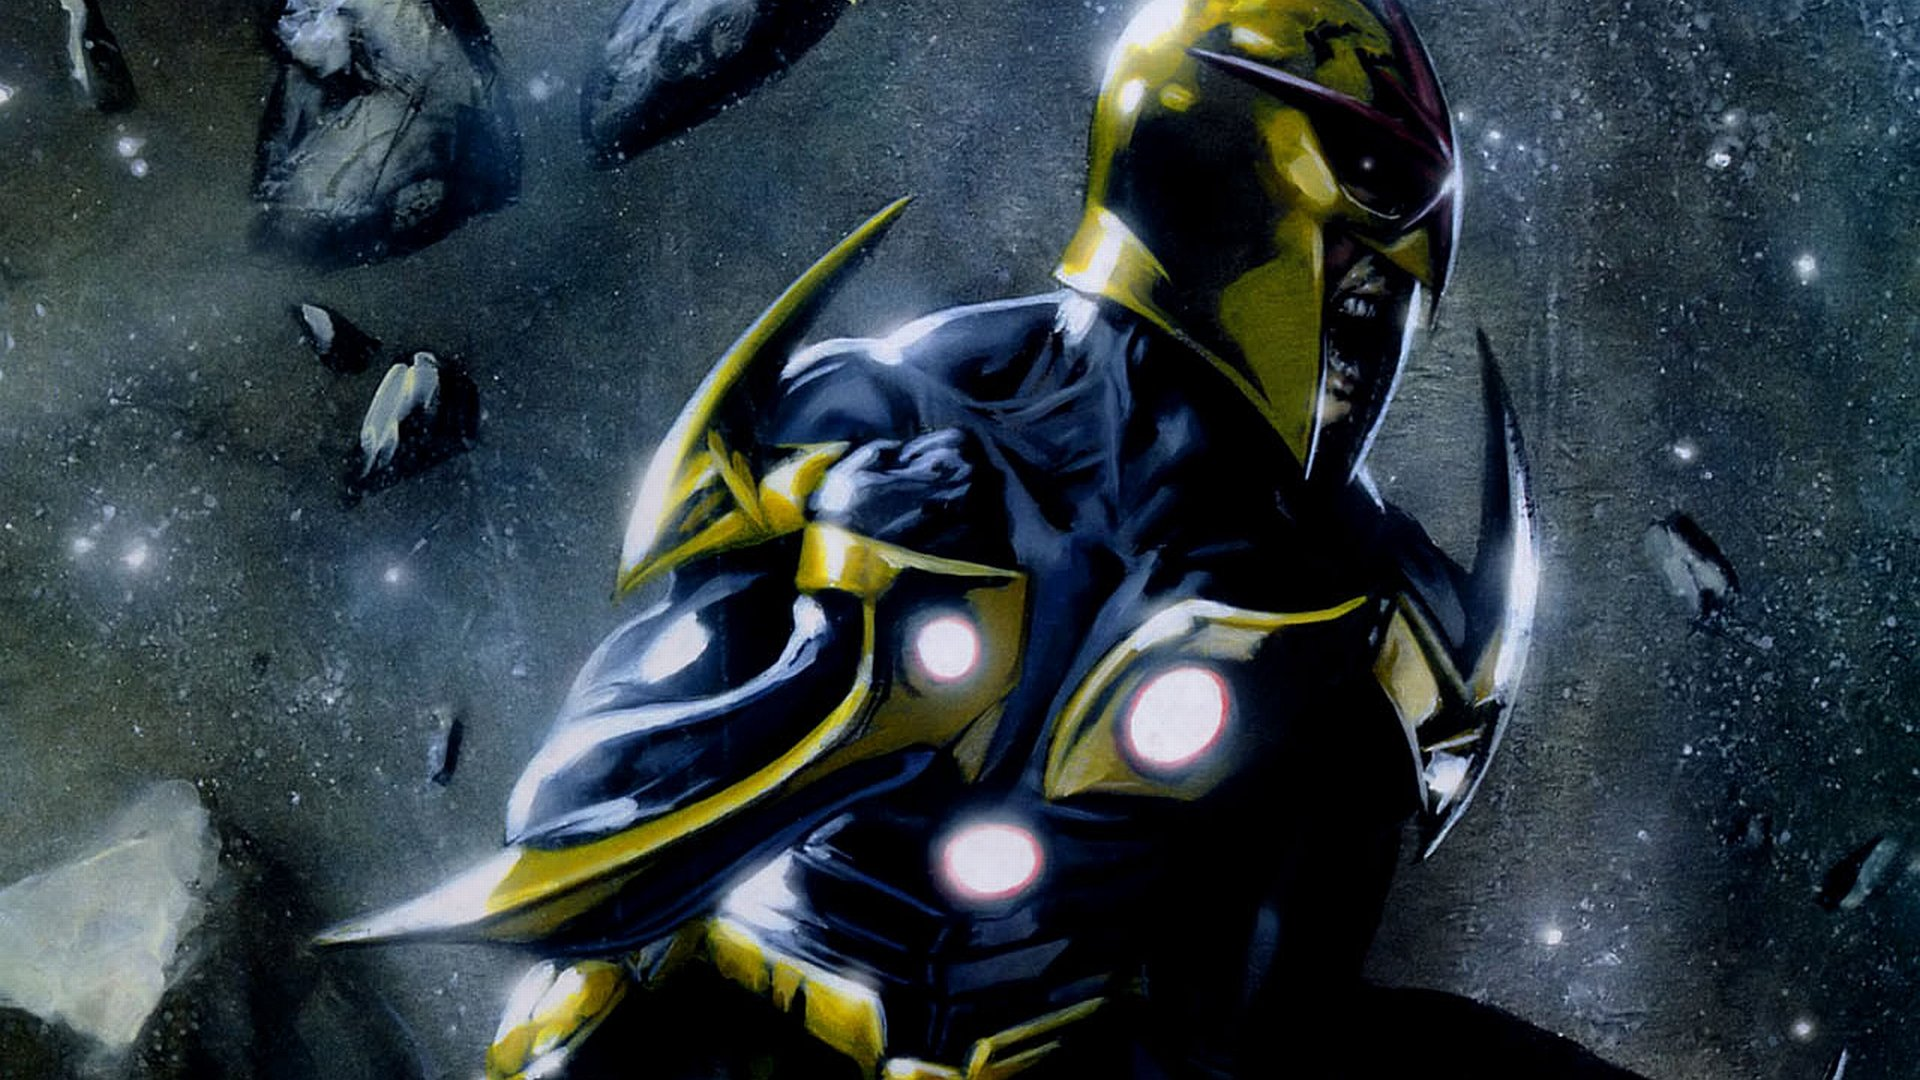 NOVA corps marvel superhero 15 wallpaper 1920x1080 246439 1920x1080